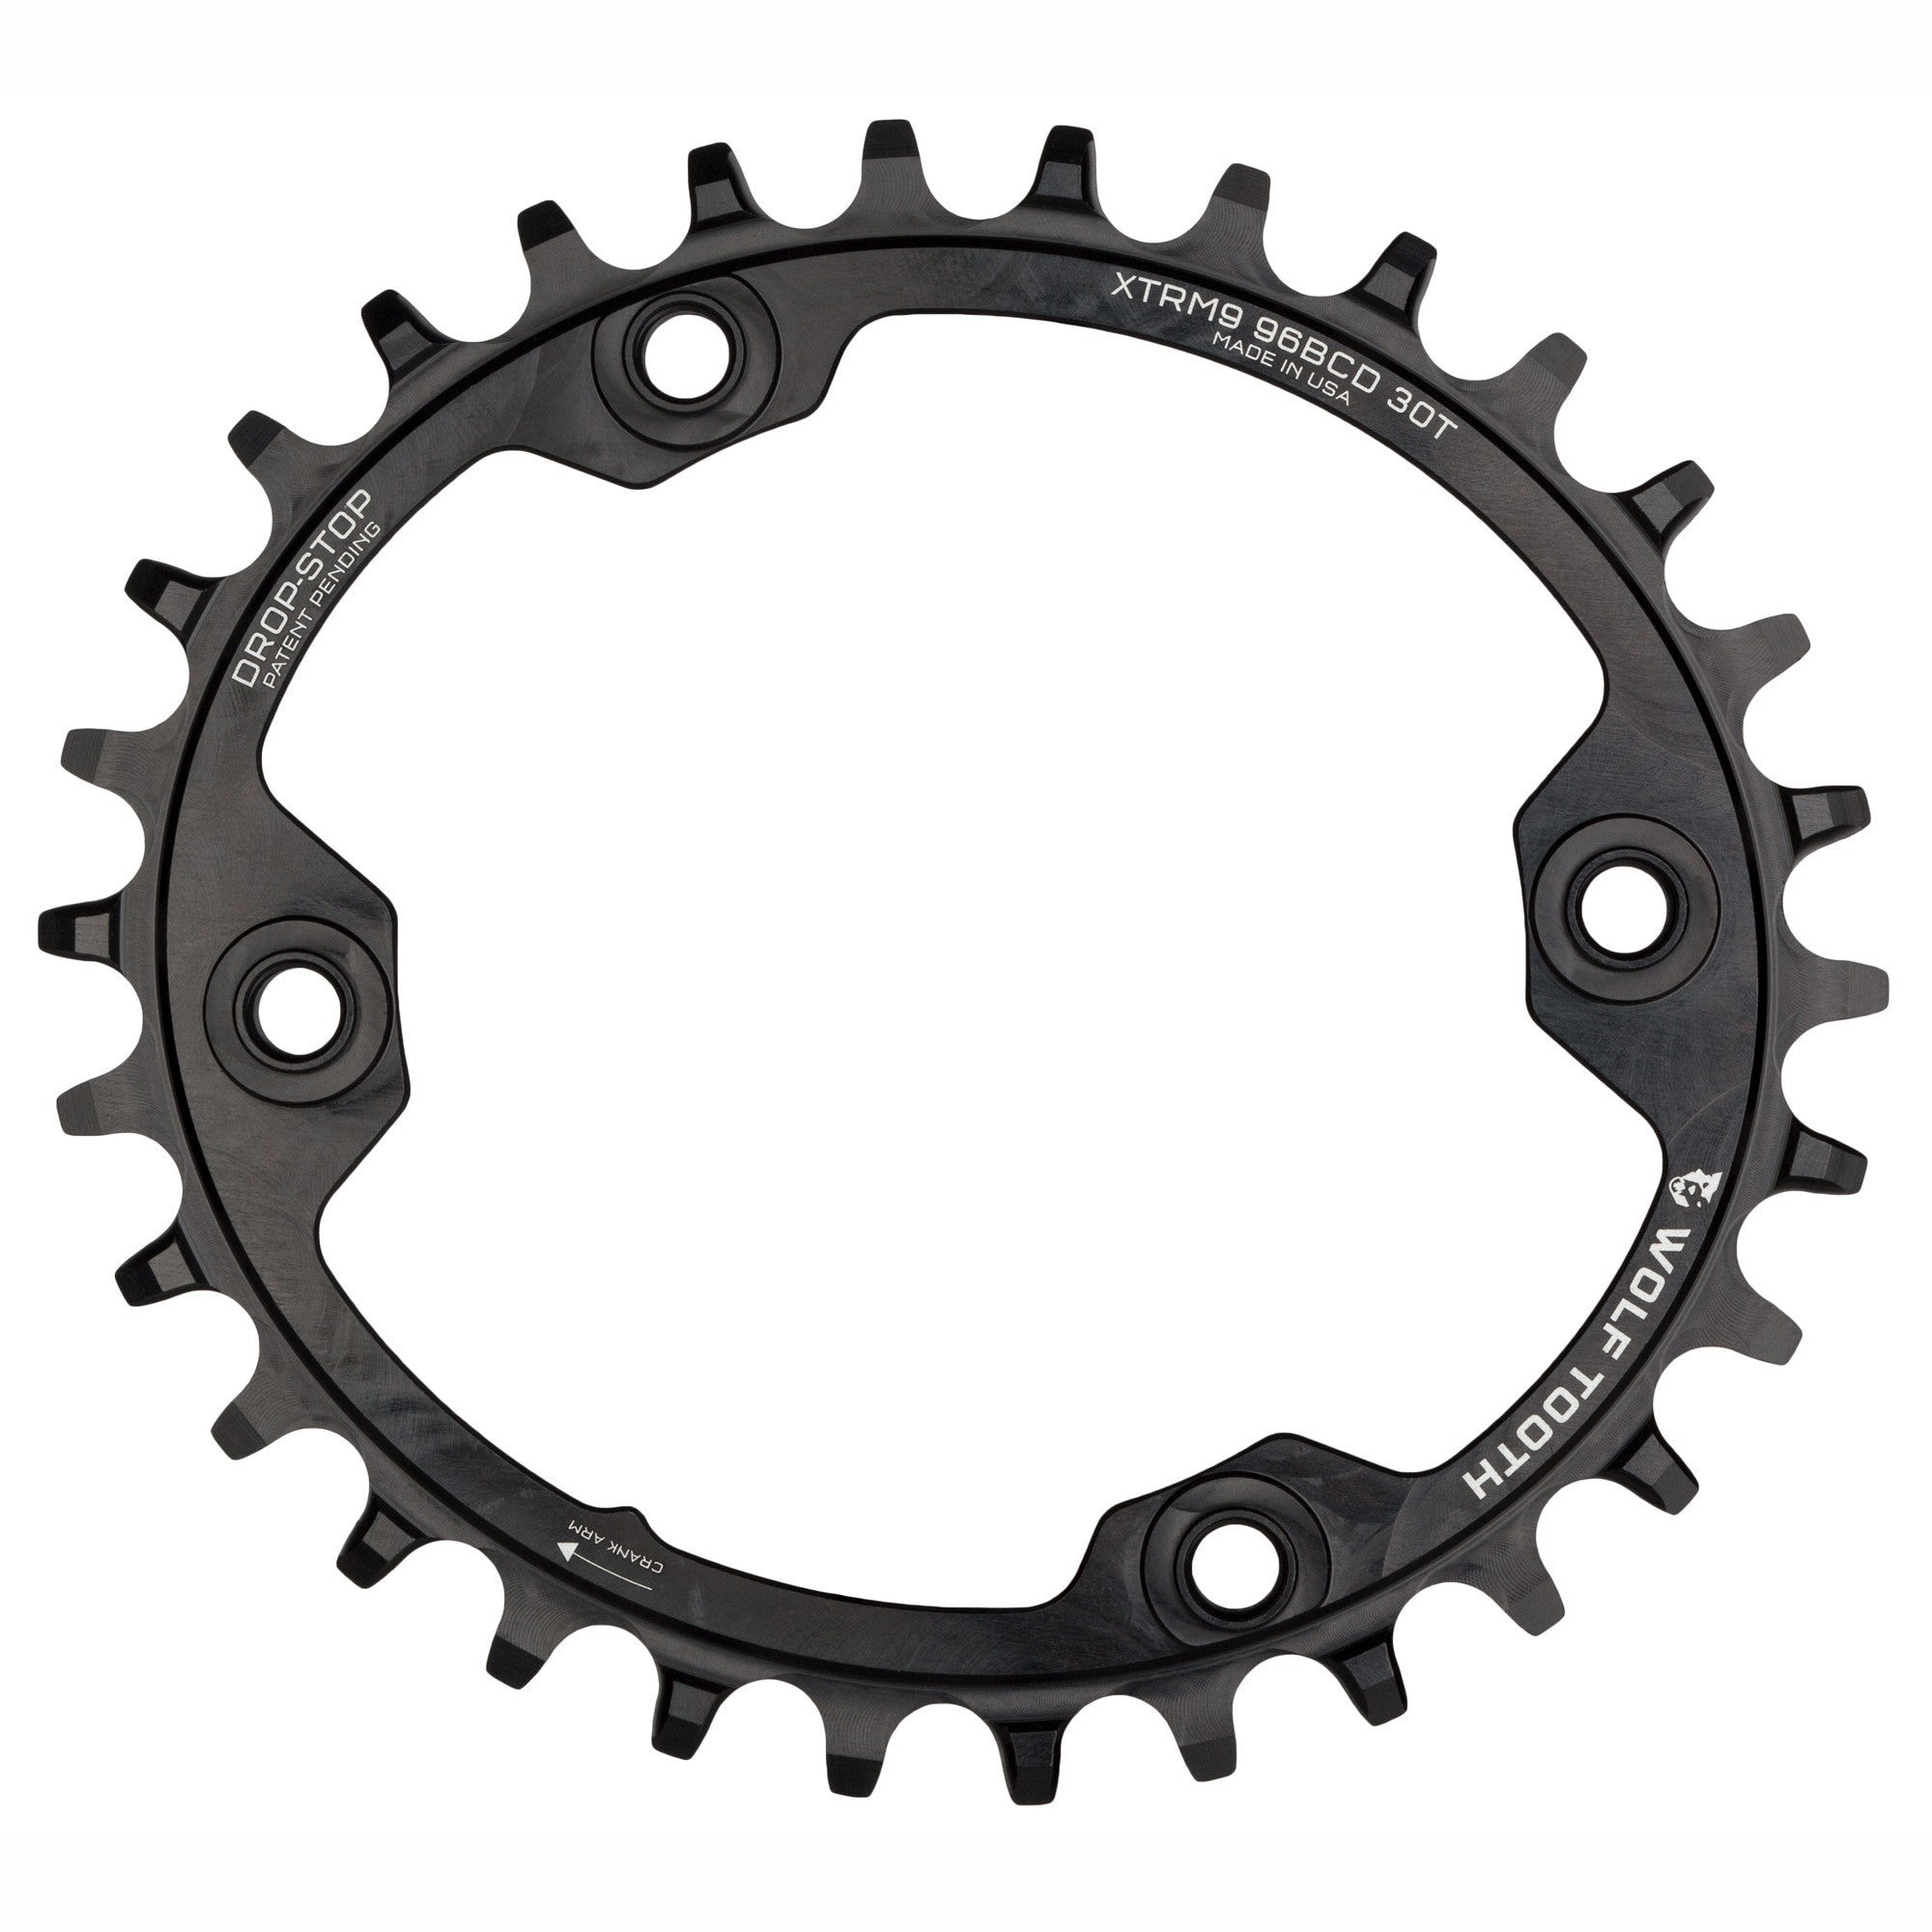 77a9b46f80d Elliptical 96 mm BCD Chainrings for Shimano XTR M9000 and M9020 ...